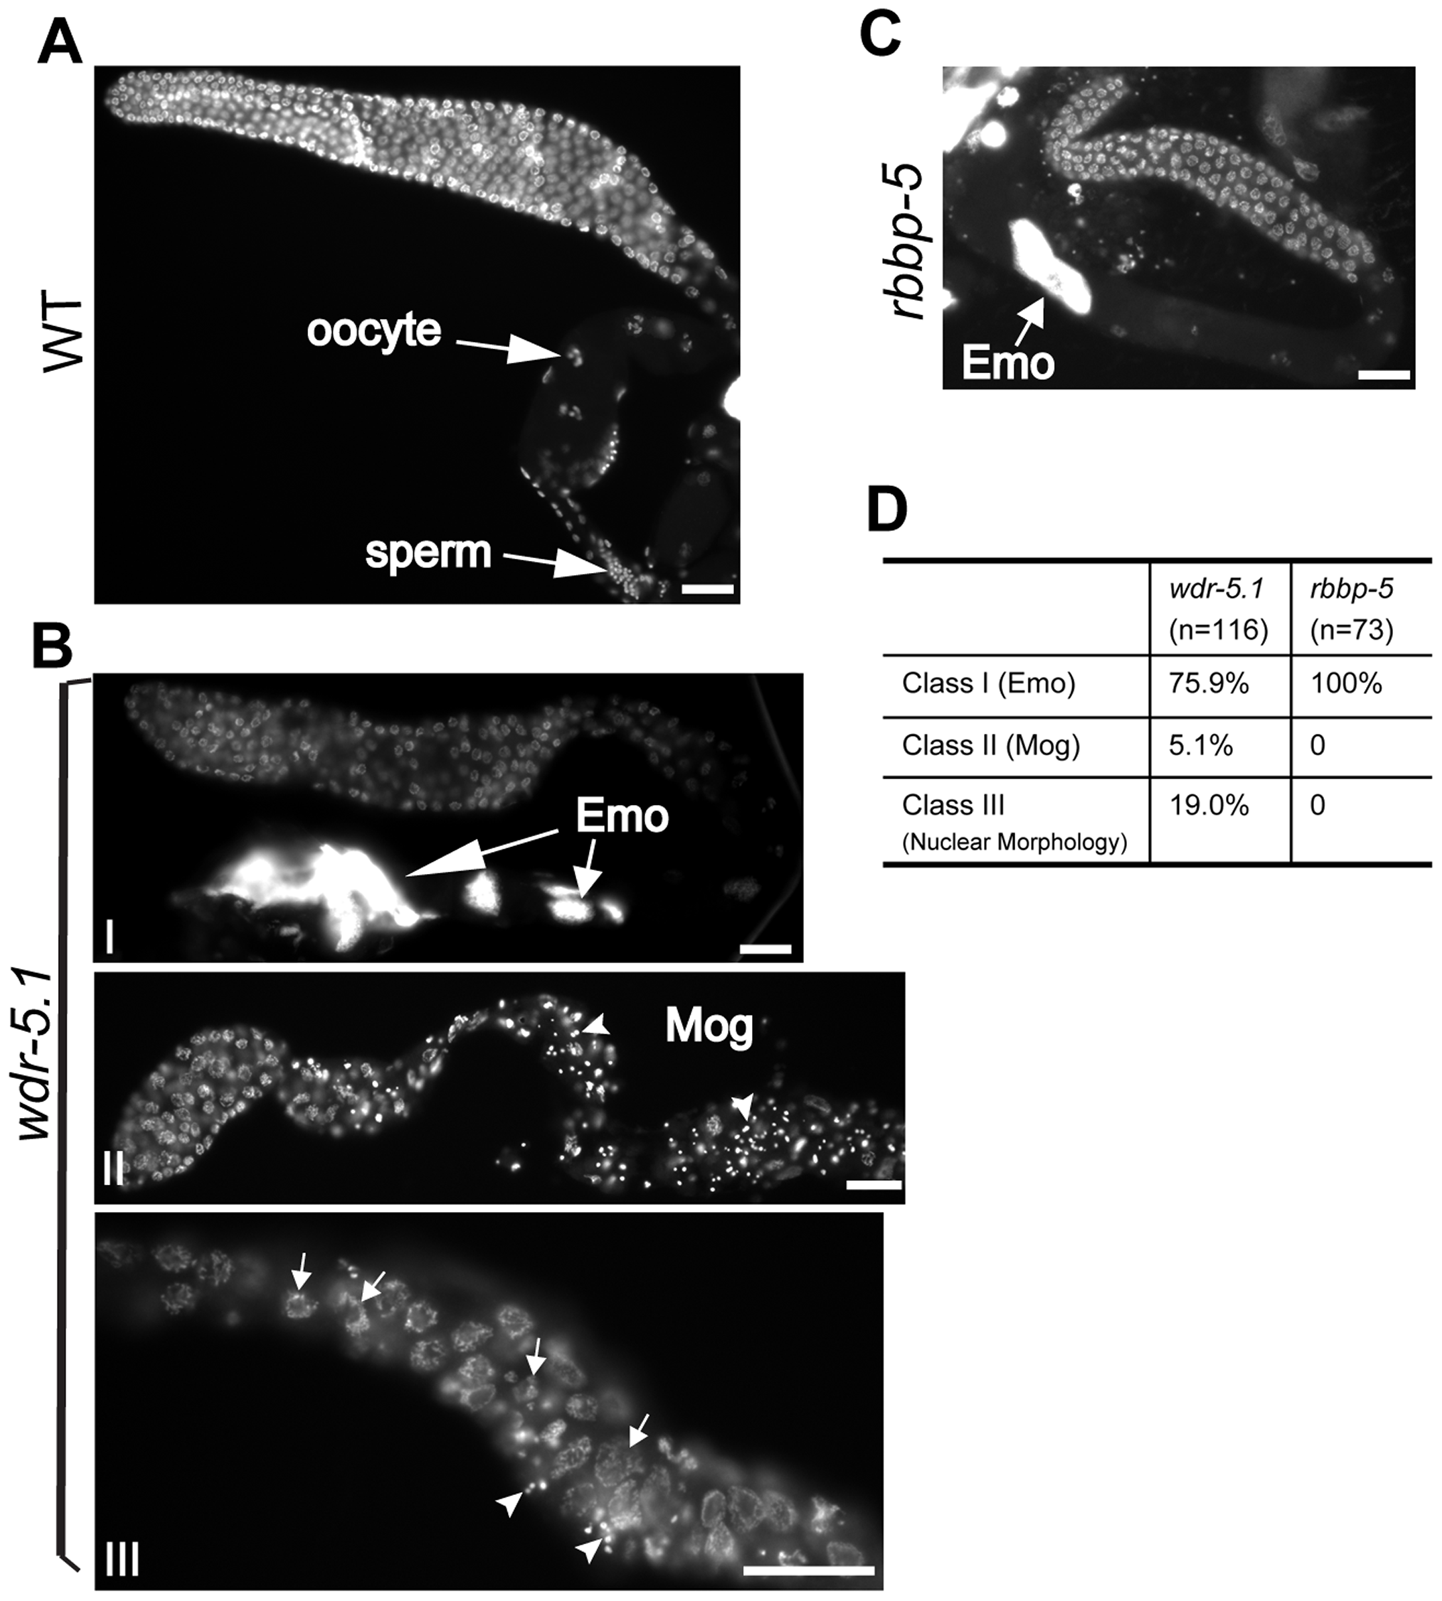 Temperature-sensitive germ cell development defects in <i>wdr-5.1</i> and <i>rbbp-5</i> mutants.